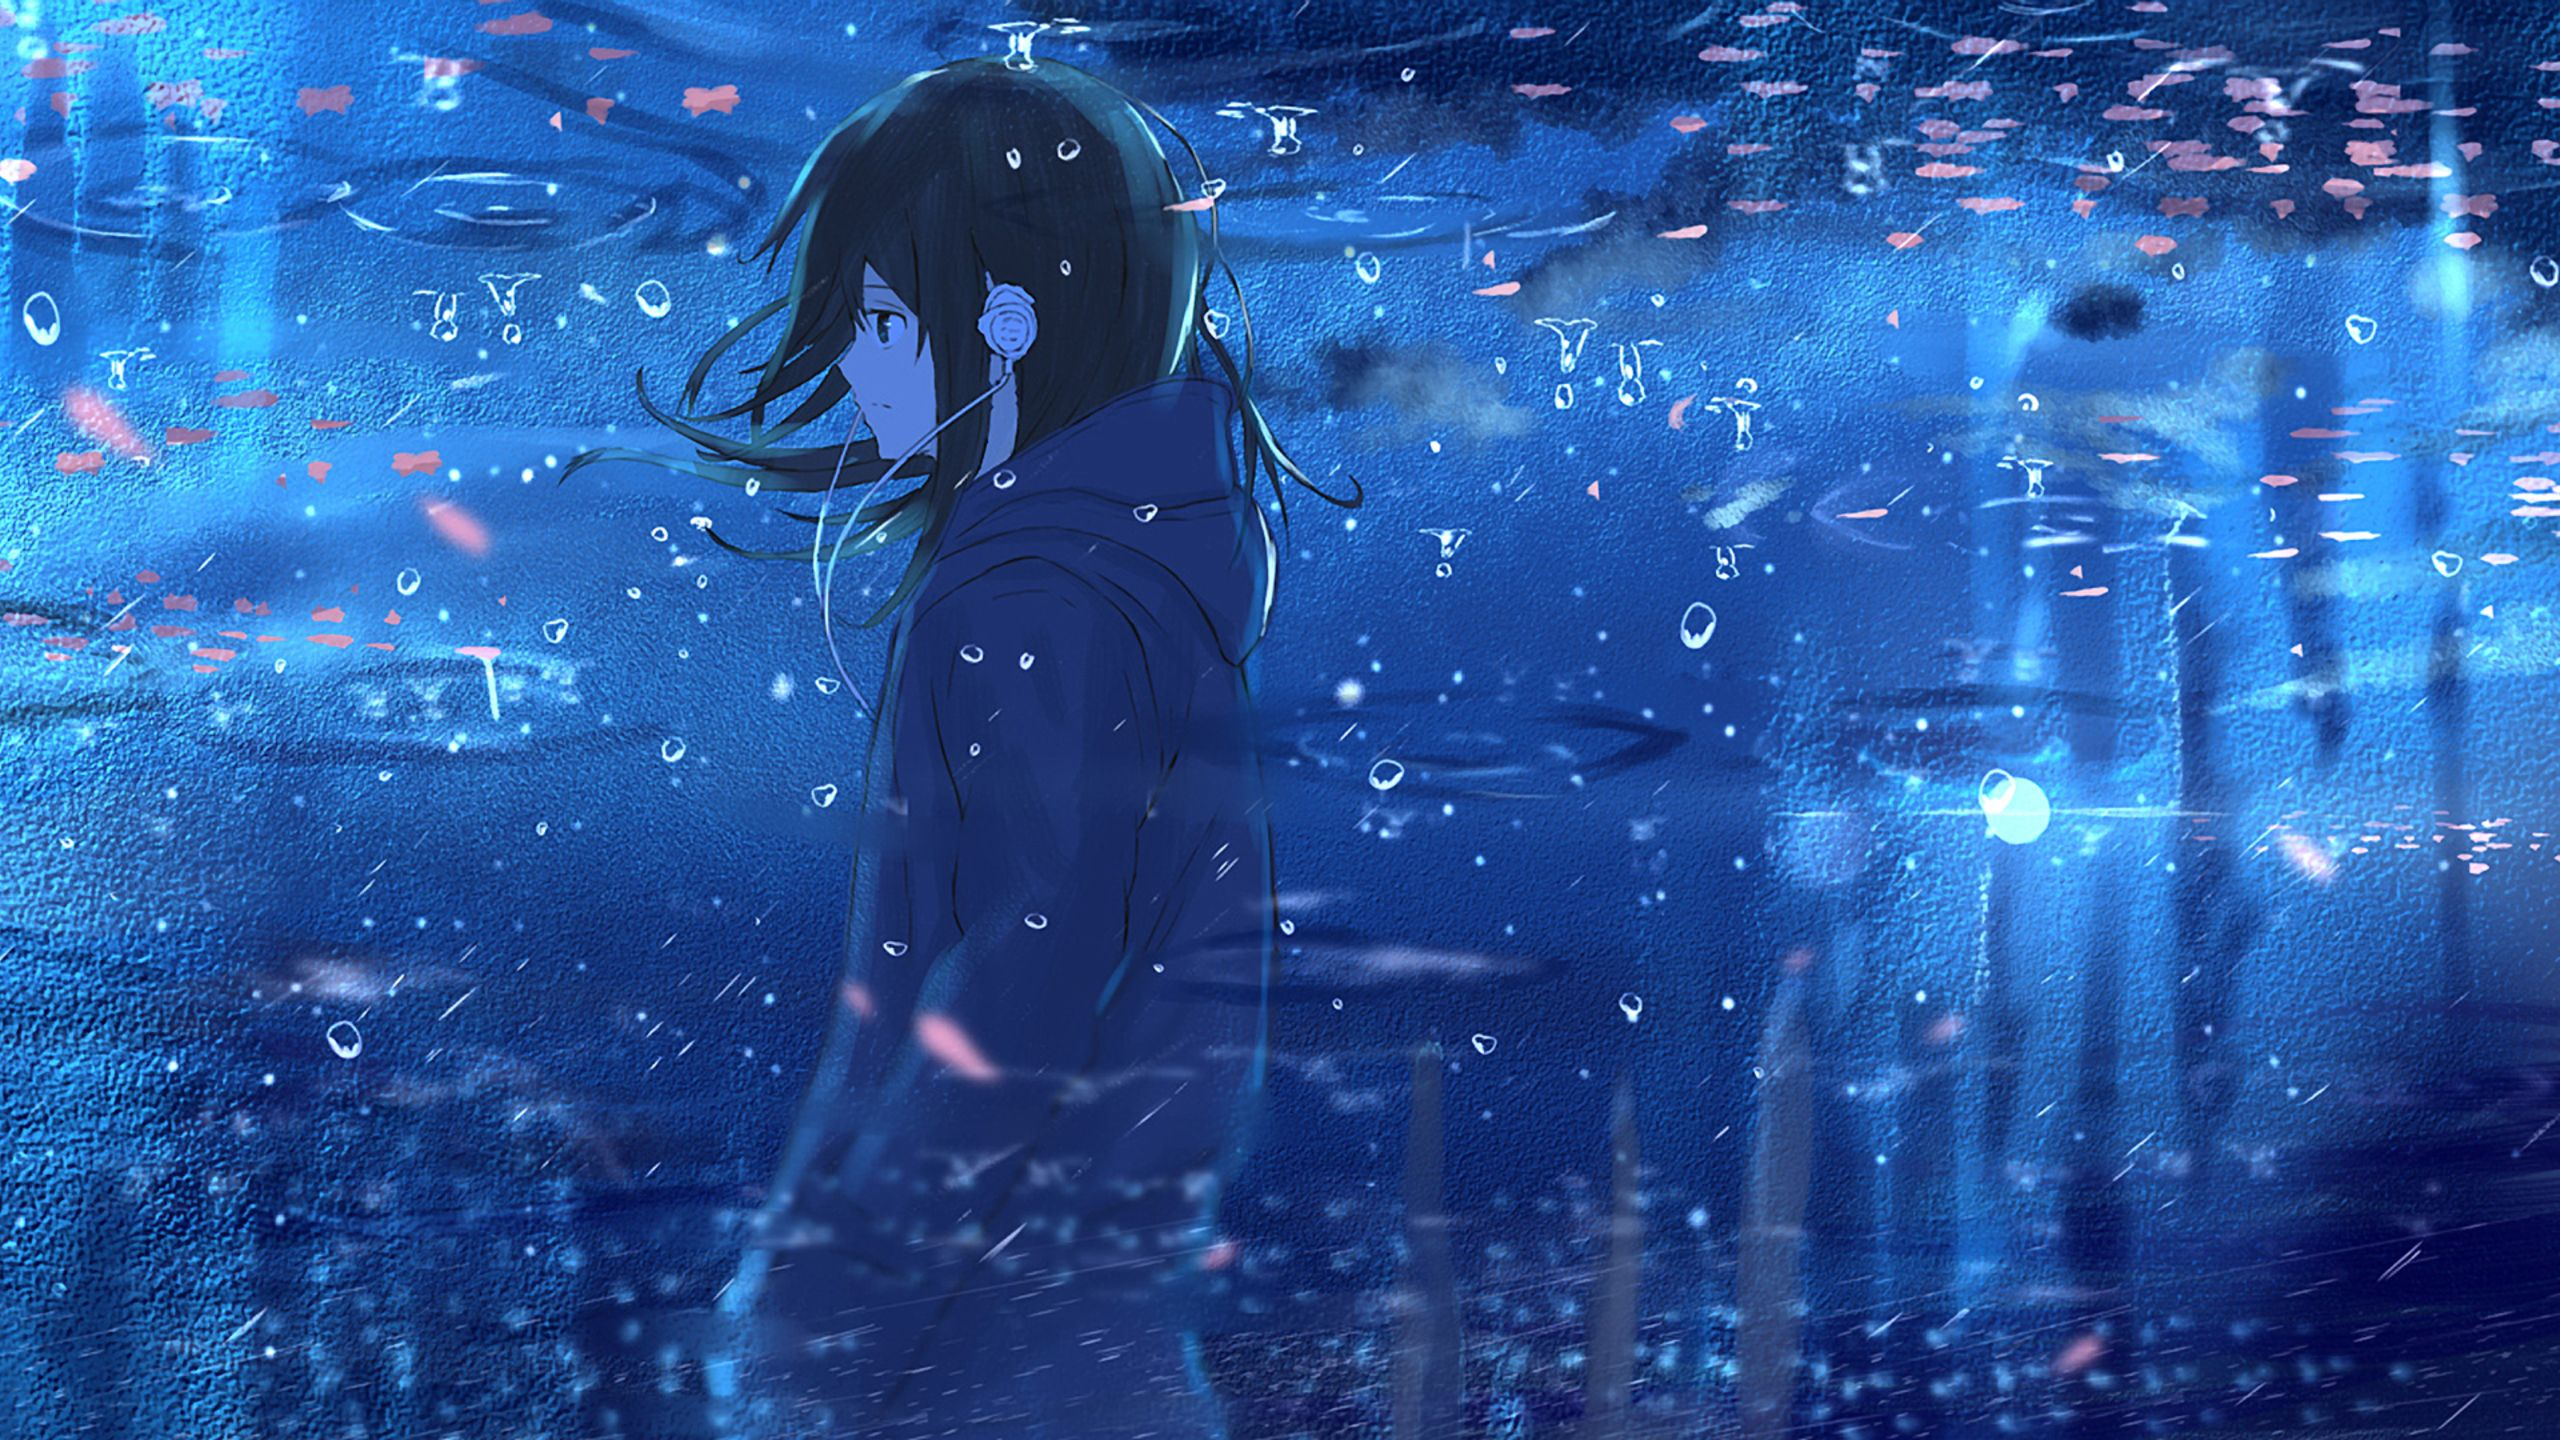 Blue Anime 2560x1440 Wallpapers Top Free Blue Anime 2560x1440 Backgrounds Wallpaperaccess